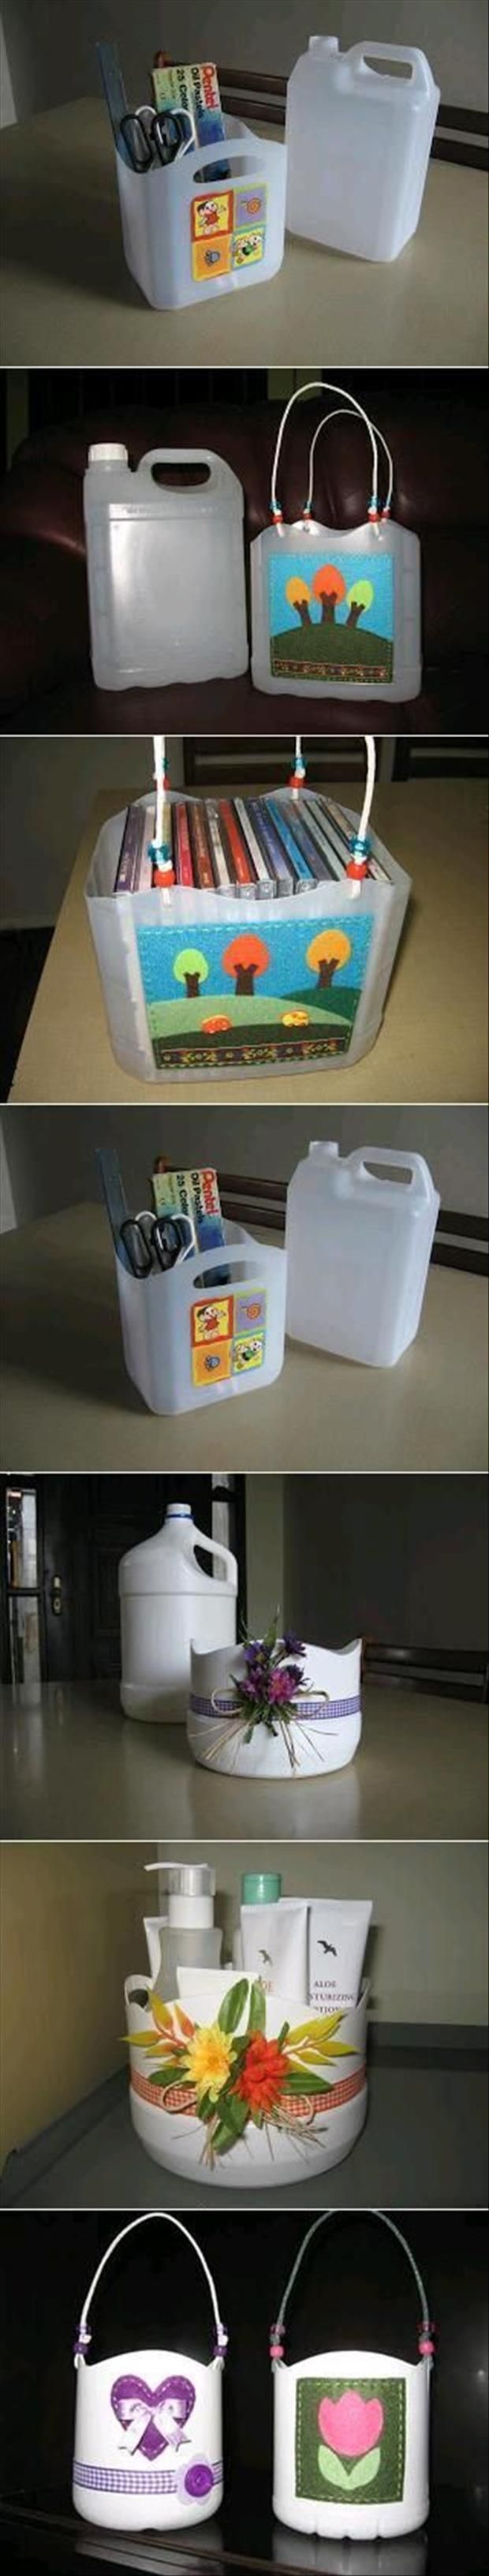 Simple Ideas That Are Borderline Crafty – 40 Pics